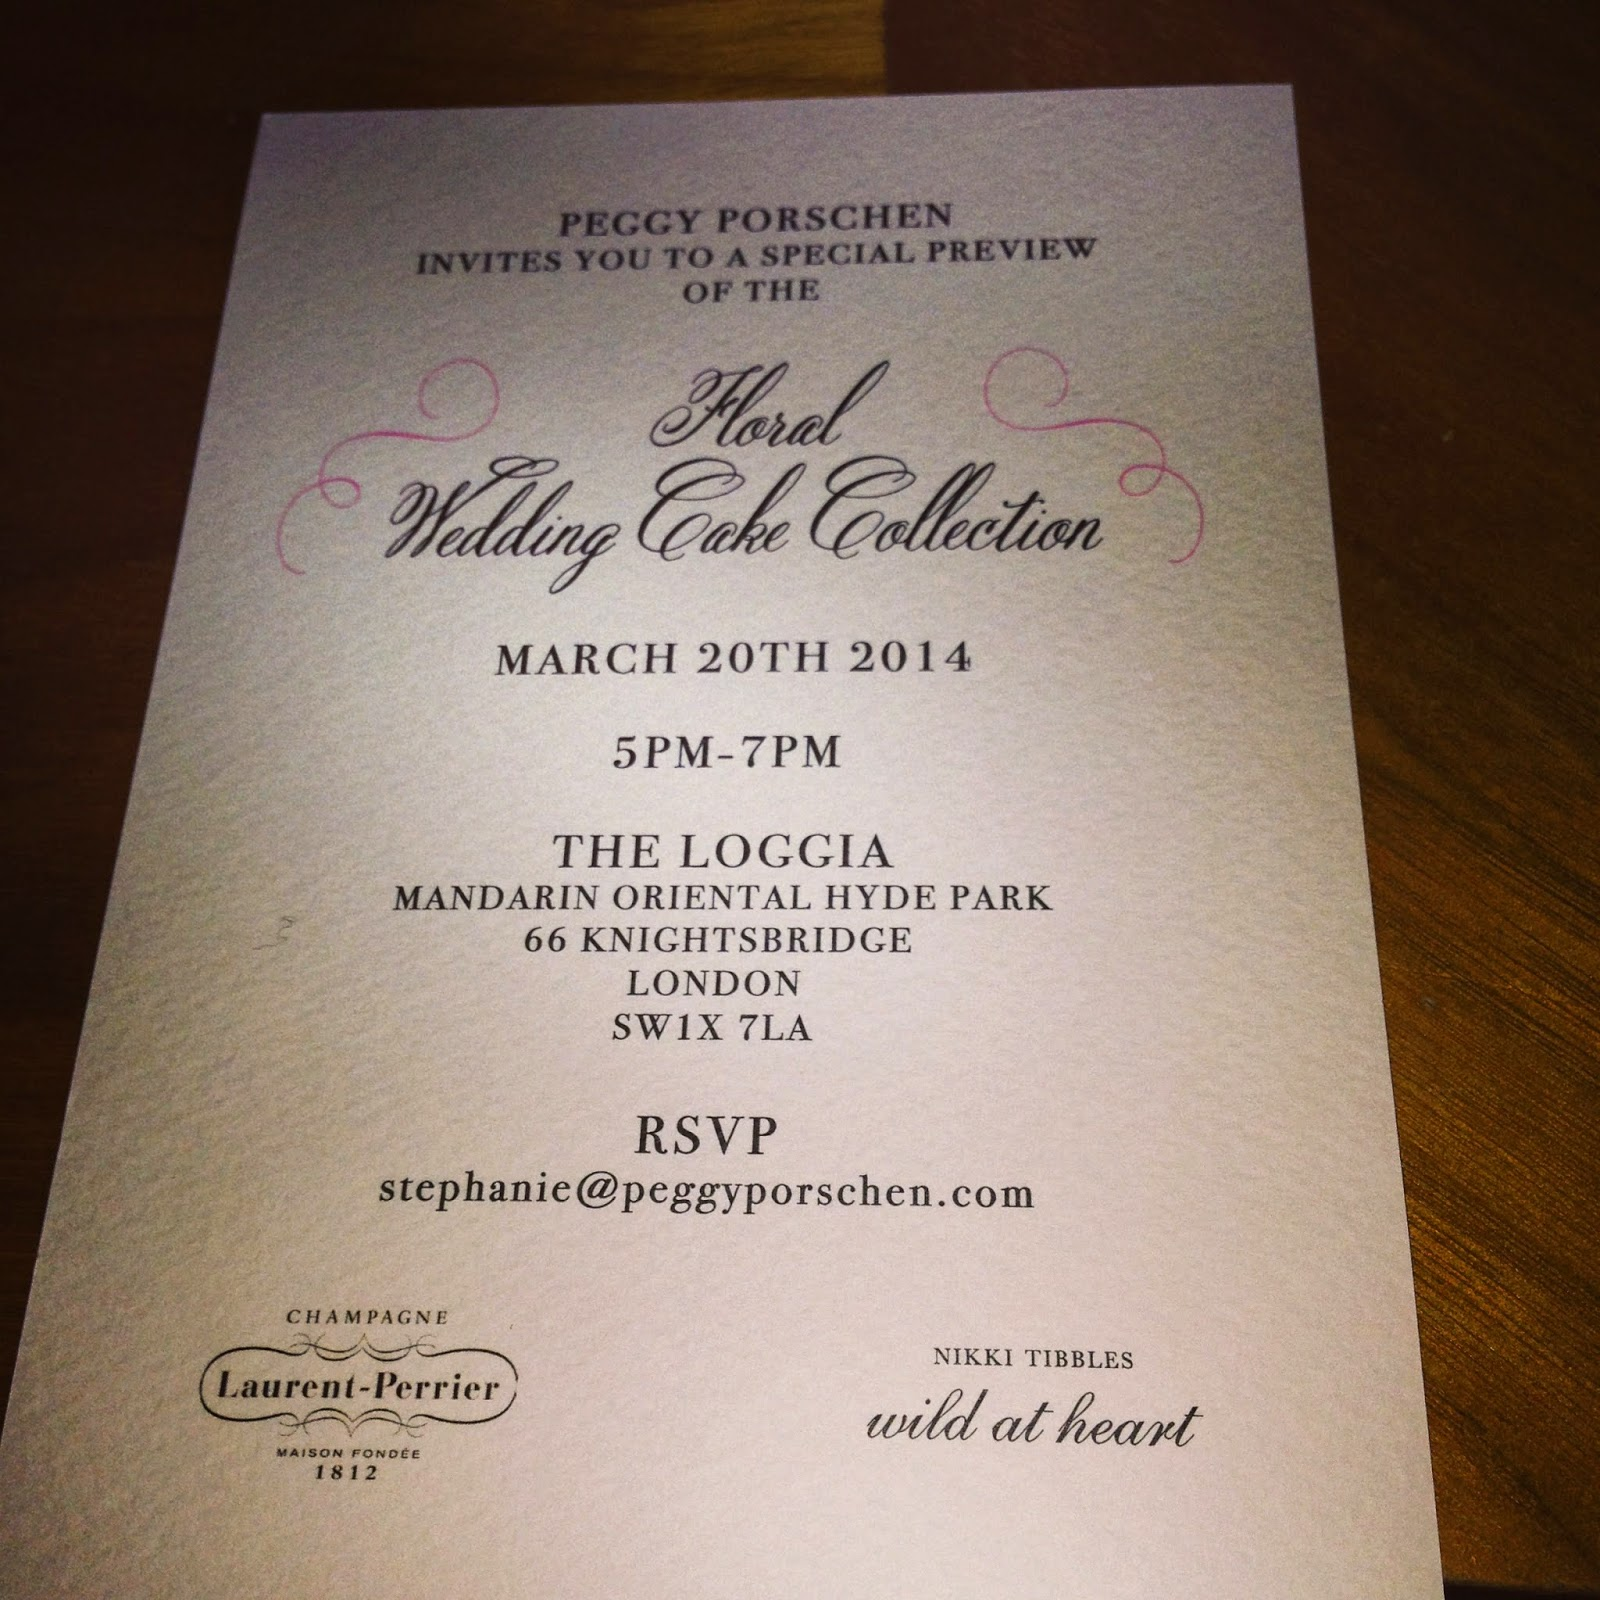 Peggy Porschen Event Invitation